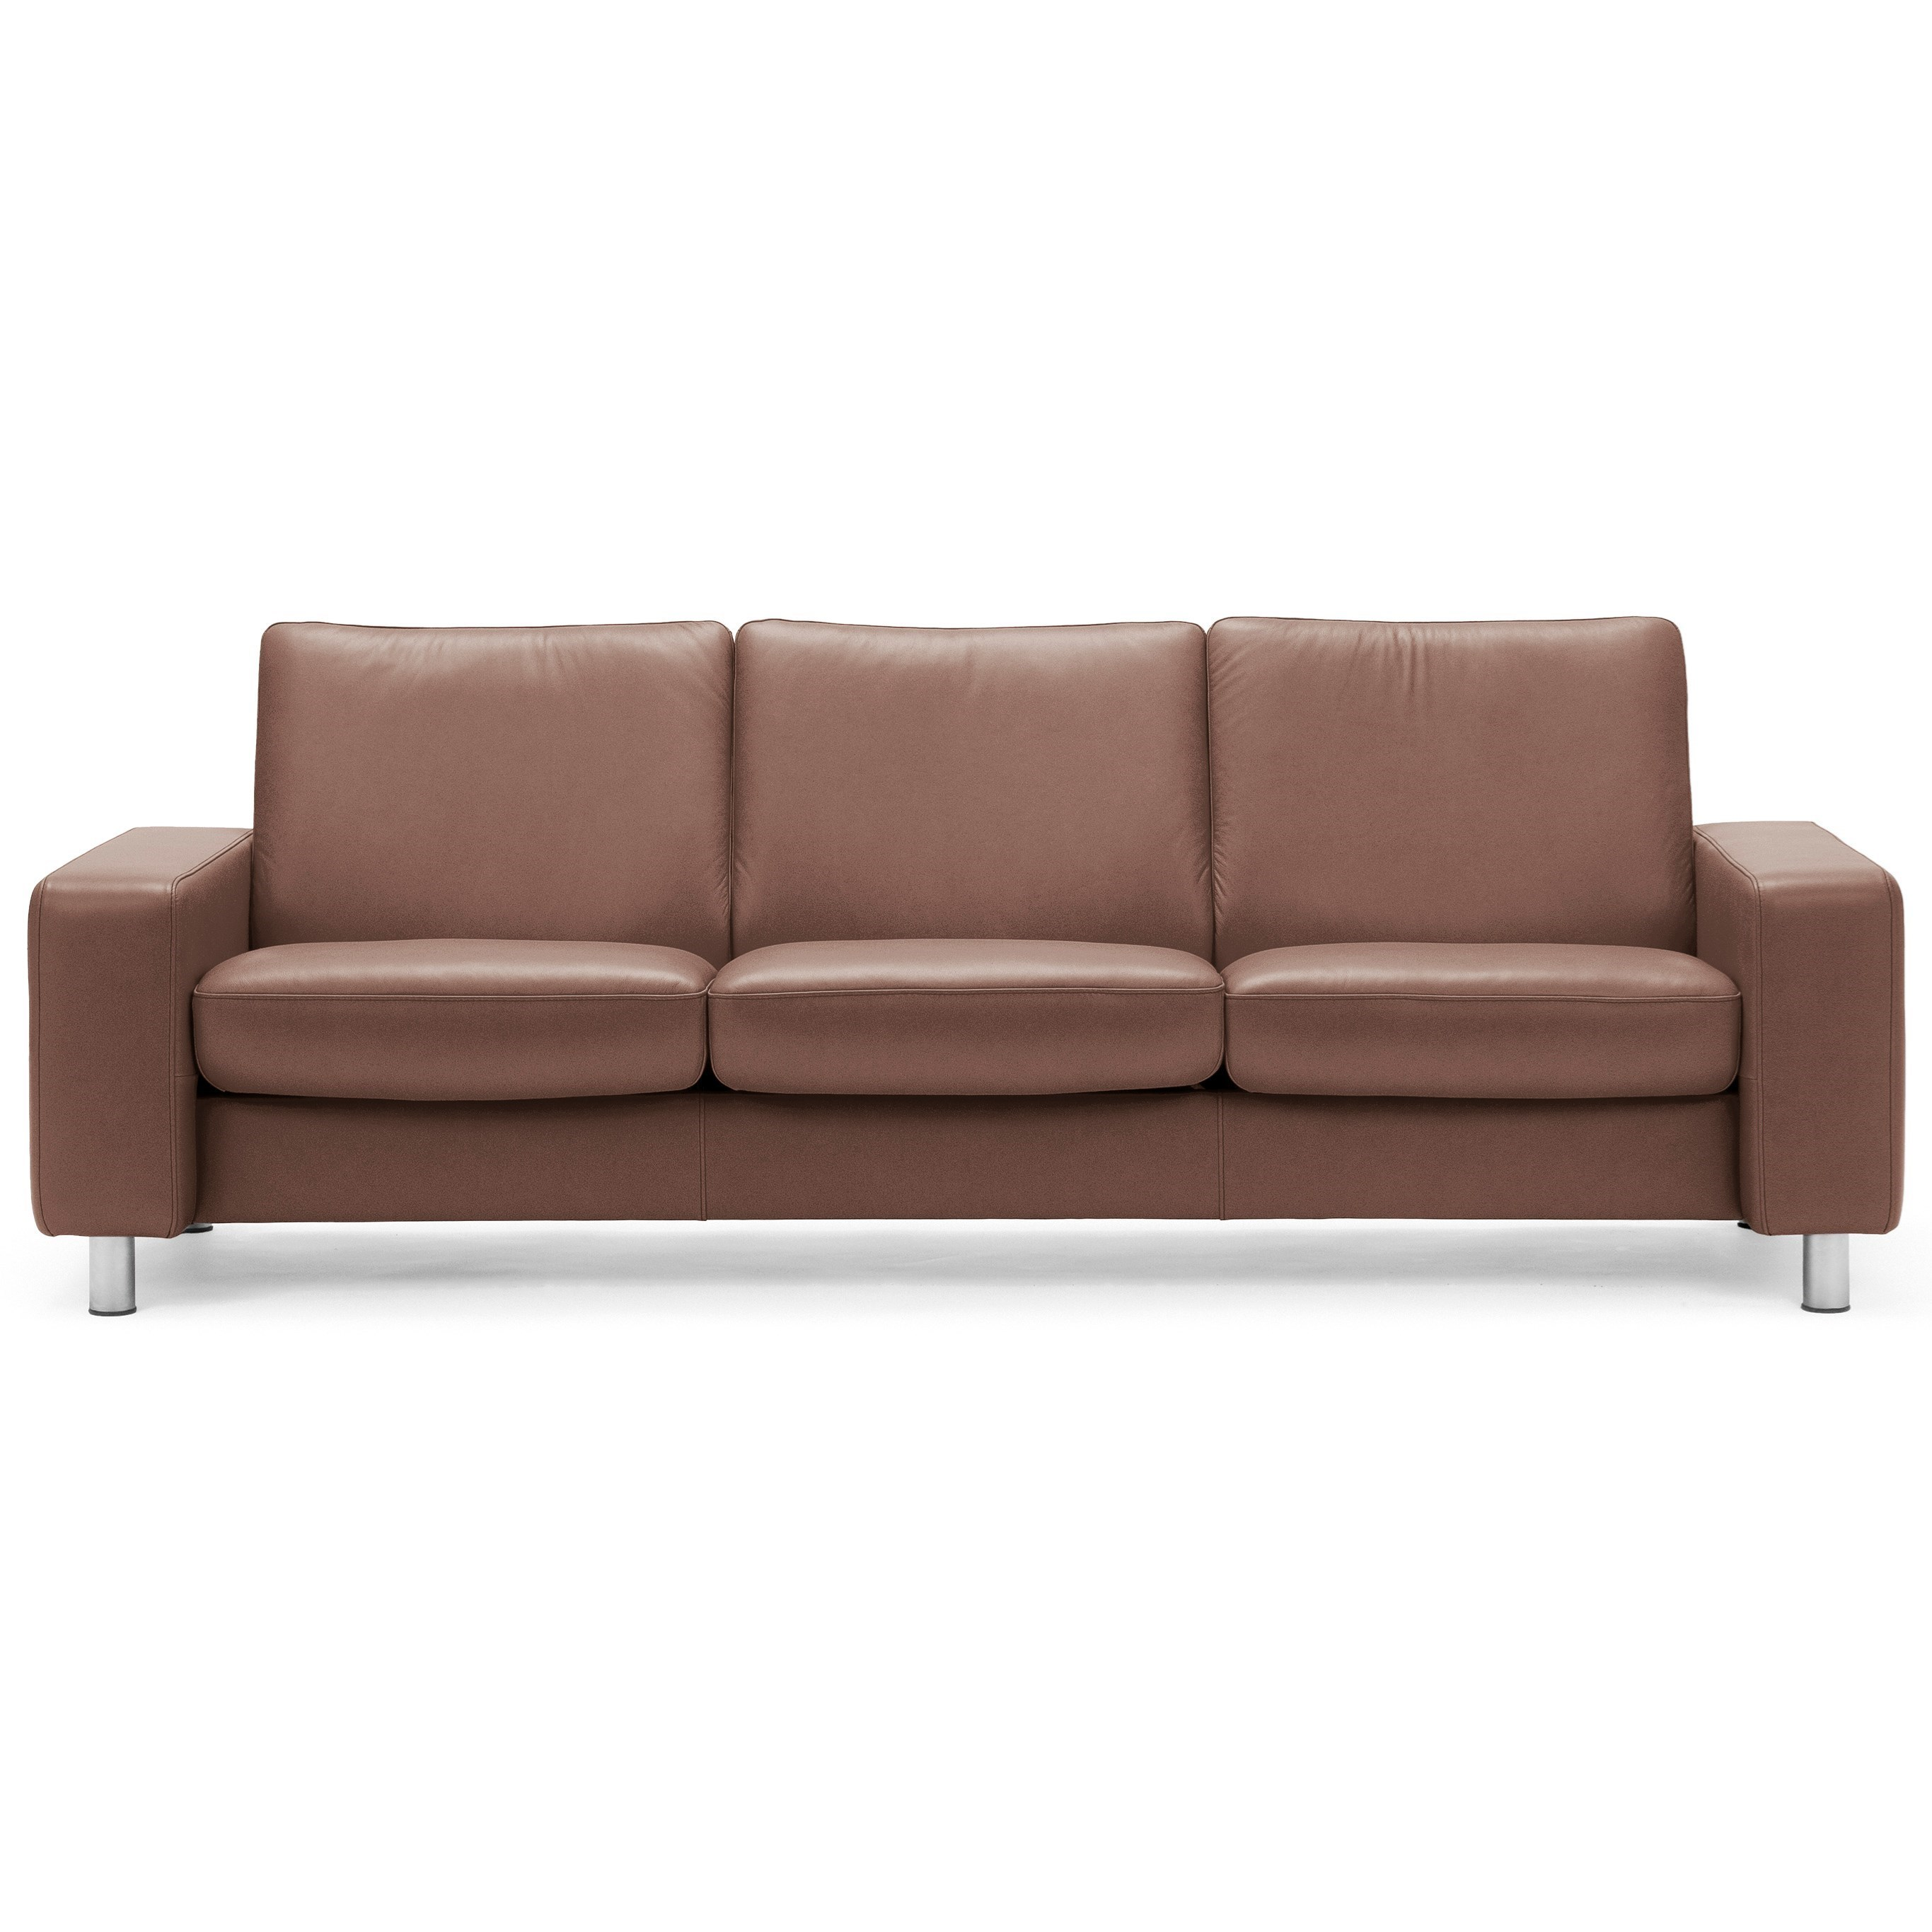 Stressless Stressless Pause Low Back Reclining Sofa   Item Number:  1416030 Paloma Vanilla